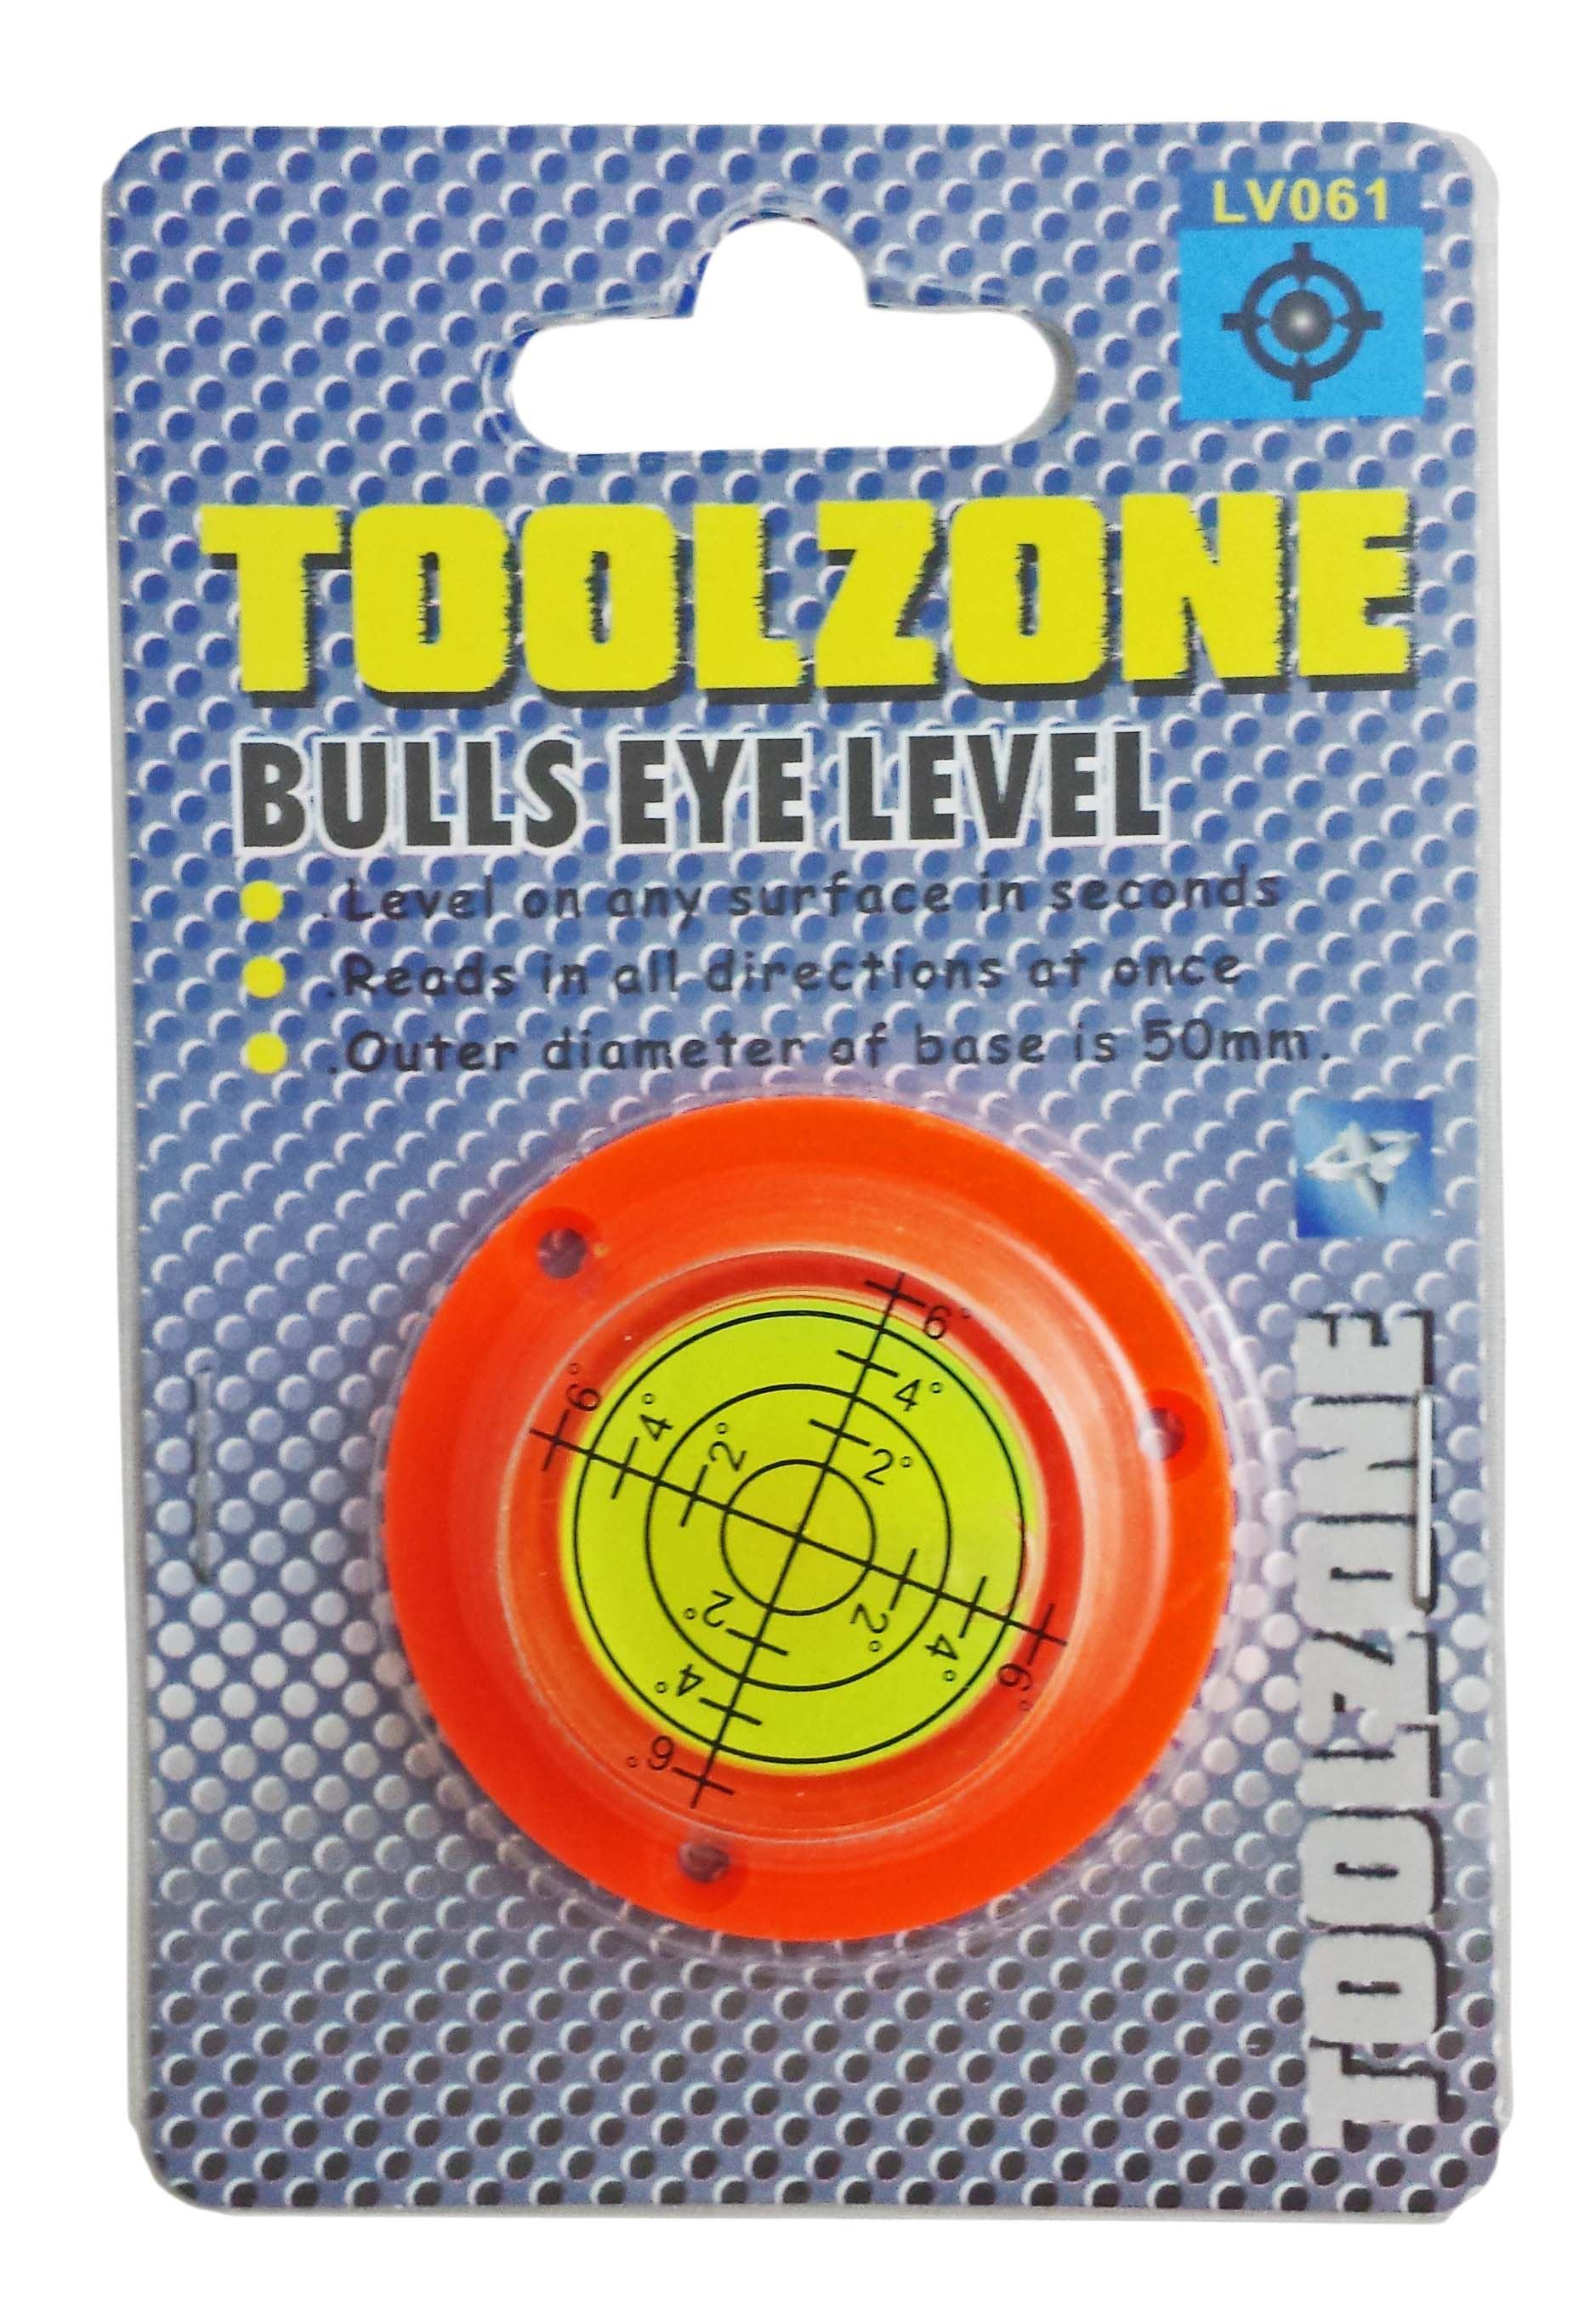 Toolzone Bulls Eye Level